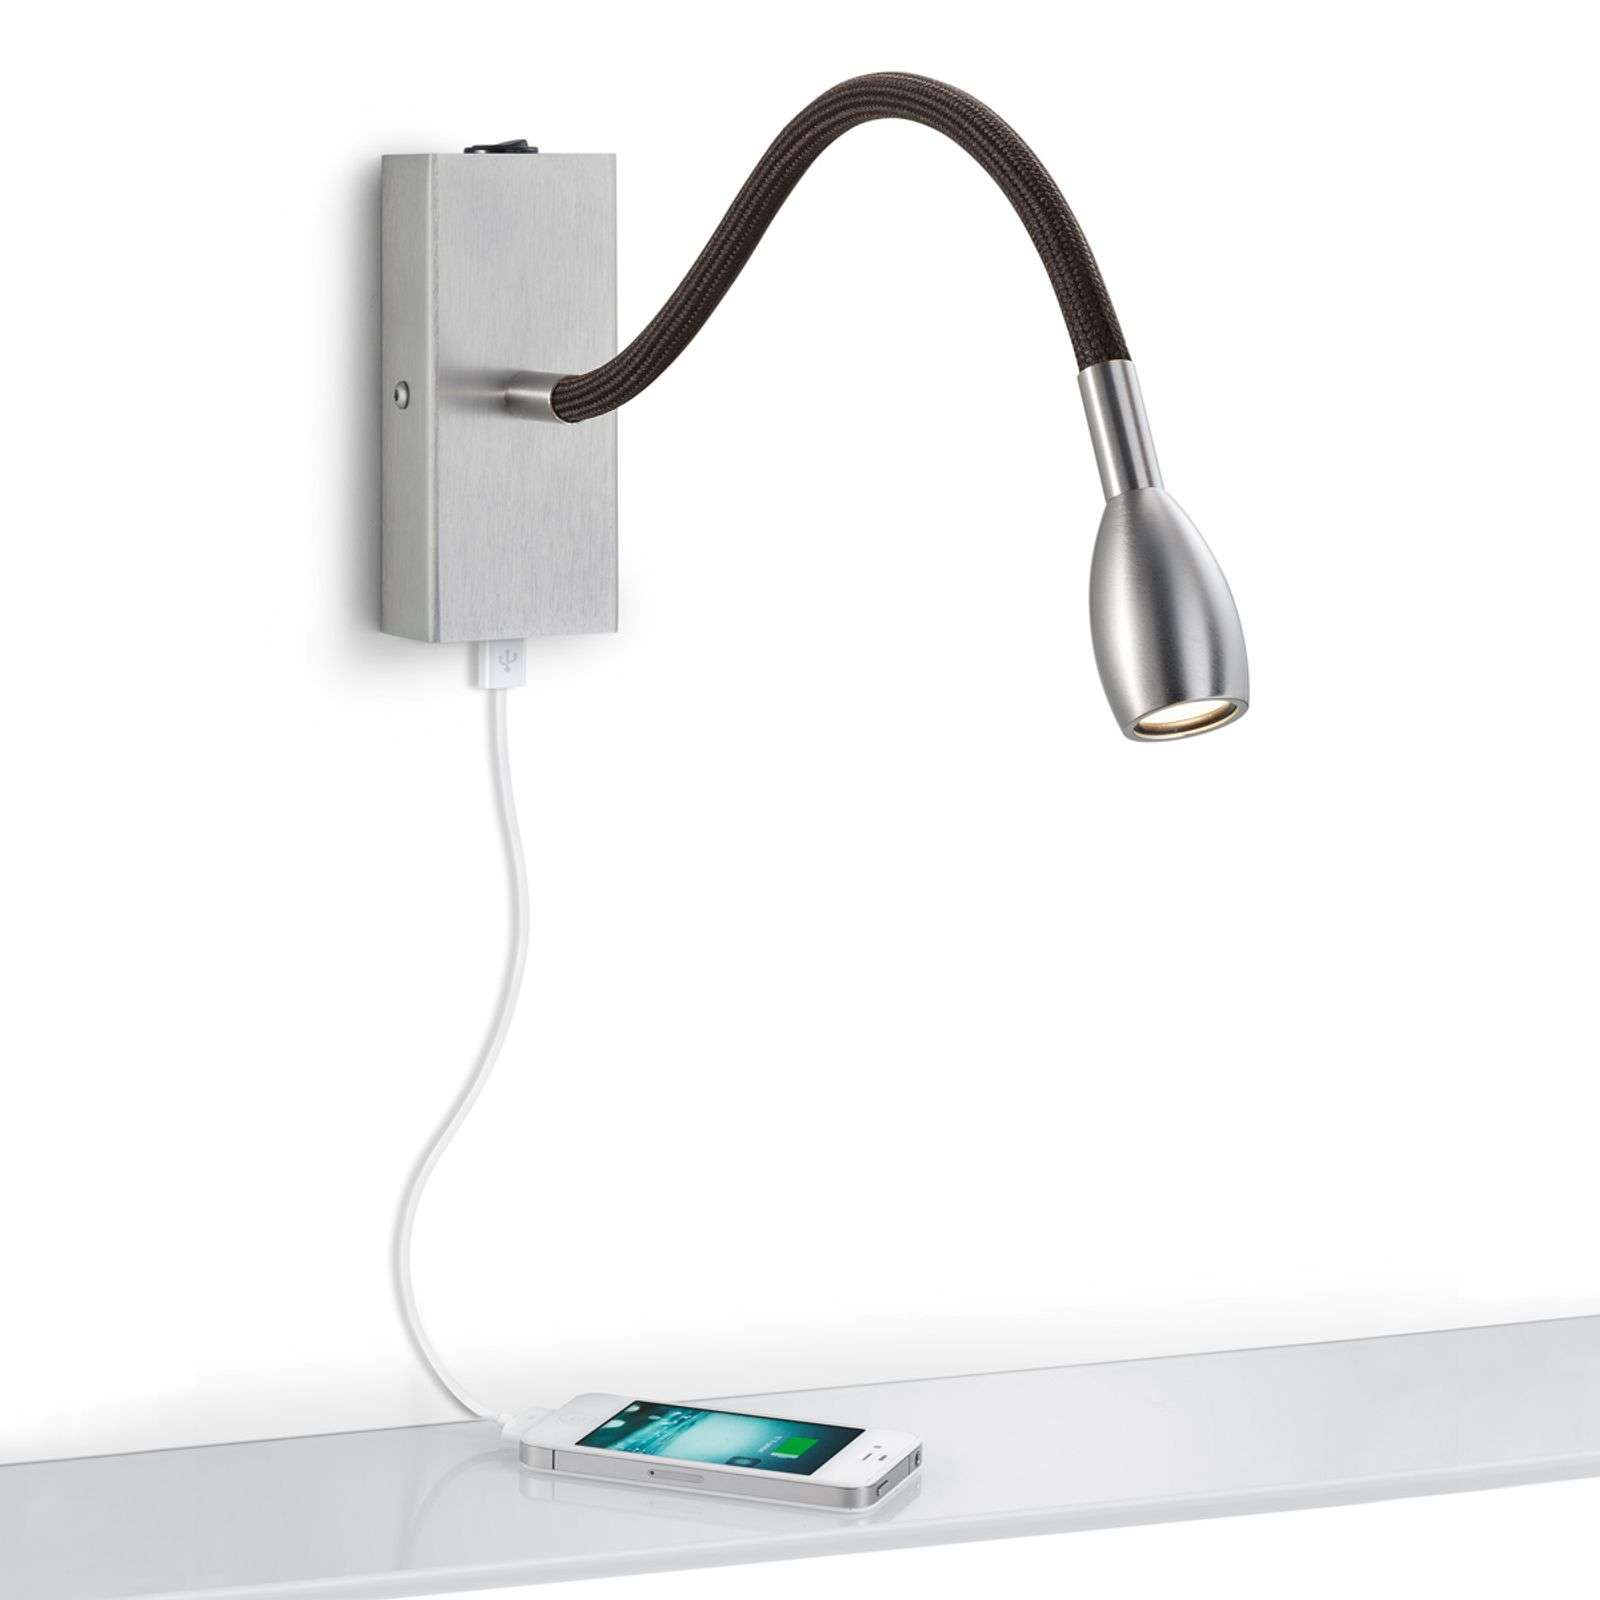 Applique a LED Milos nichel con attacco USB